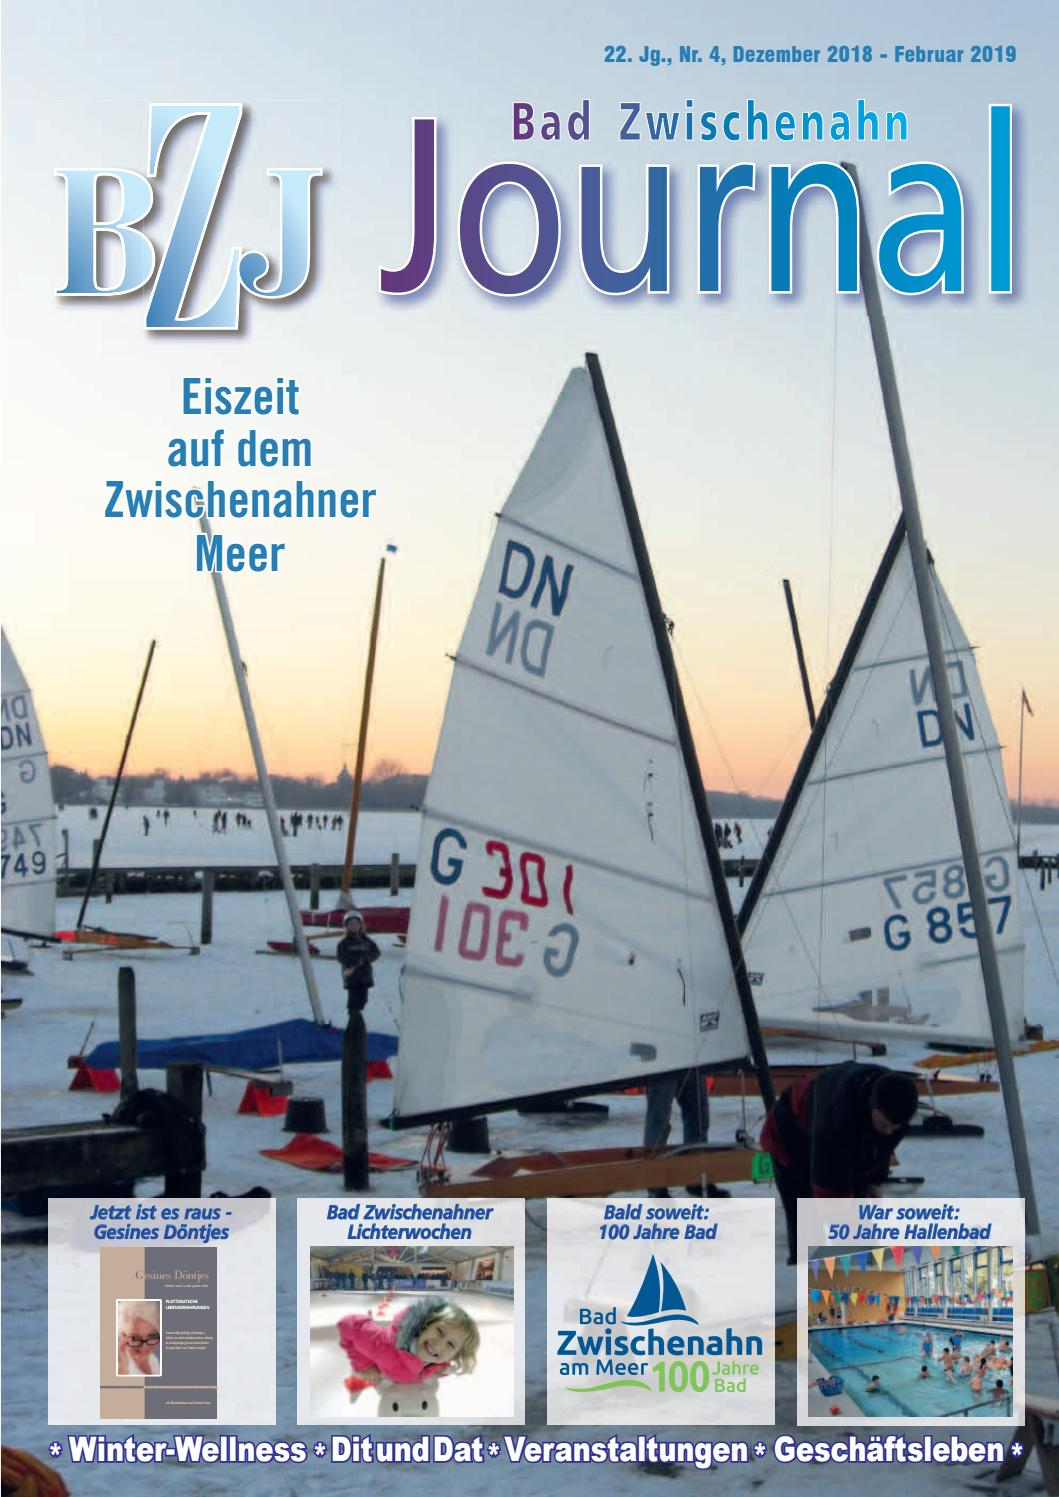 Bad Zwischenahn Veranstaltungen Bz Journal Winter 2018 By Büntingmedia Issuu